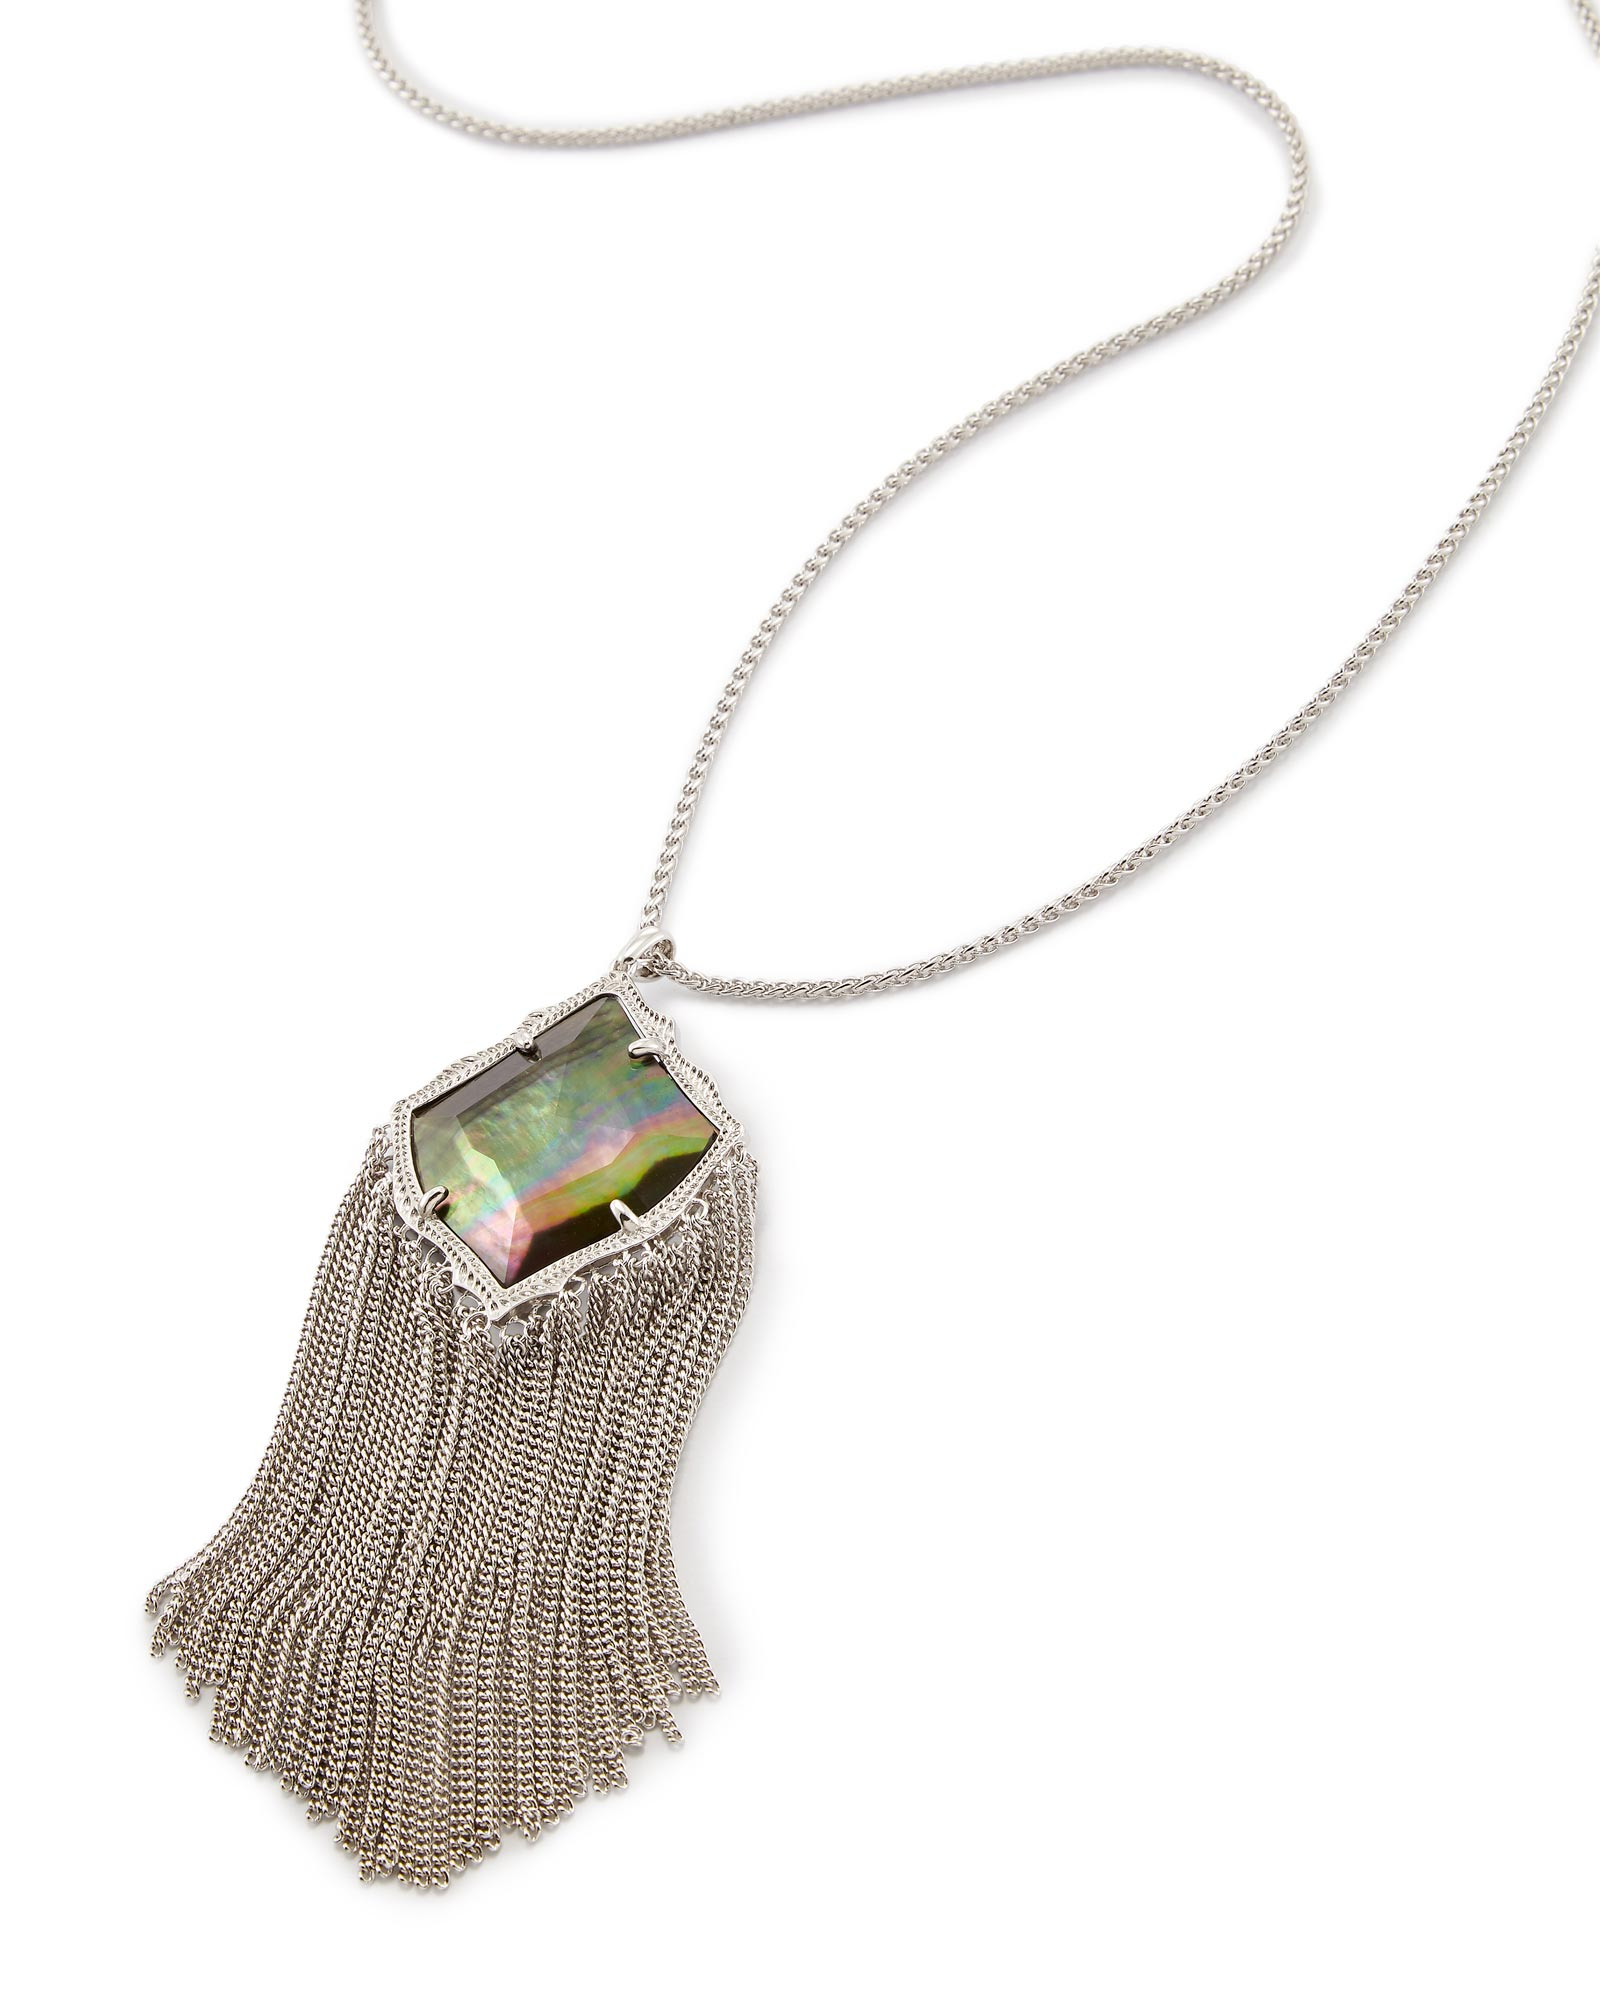 Kingston Long Pendant Necklace in Black Pearl